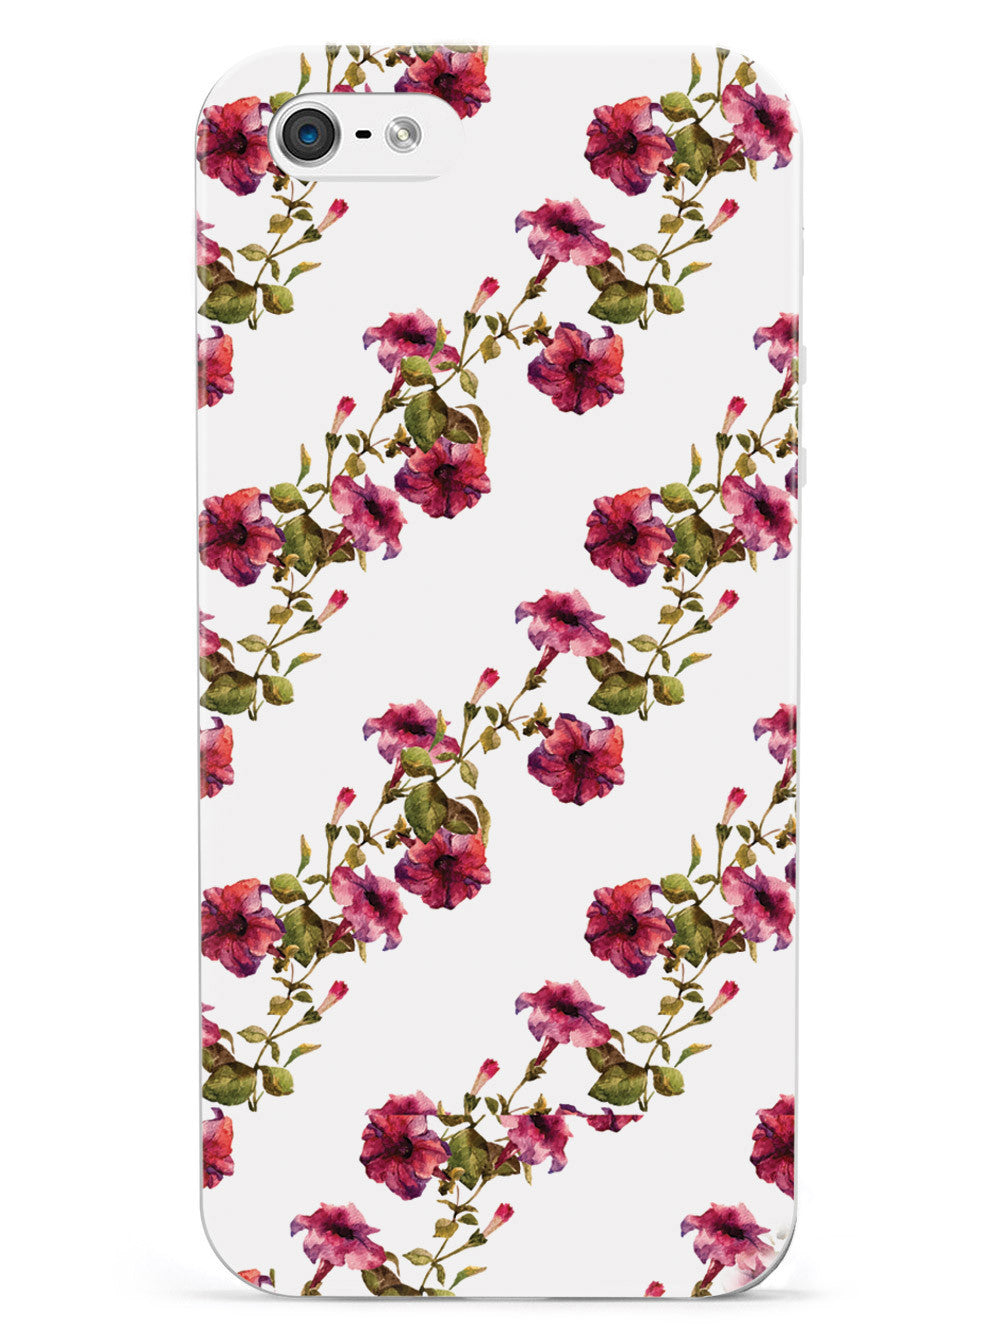 Pink Flower Vine Pattern Case